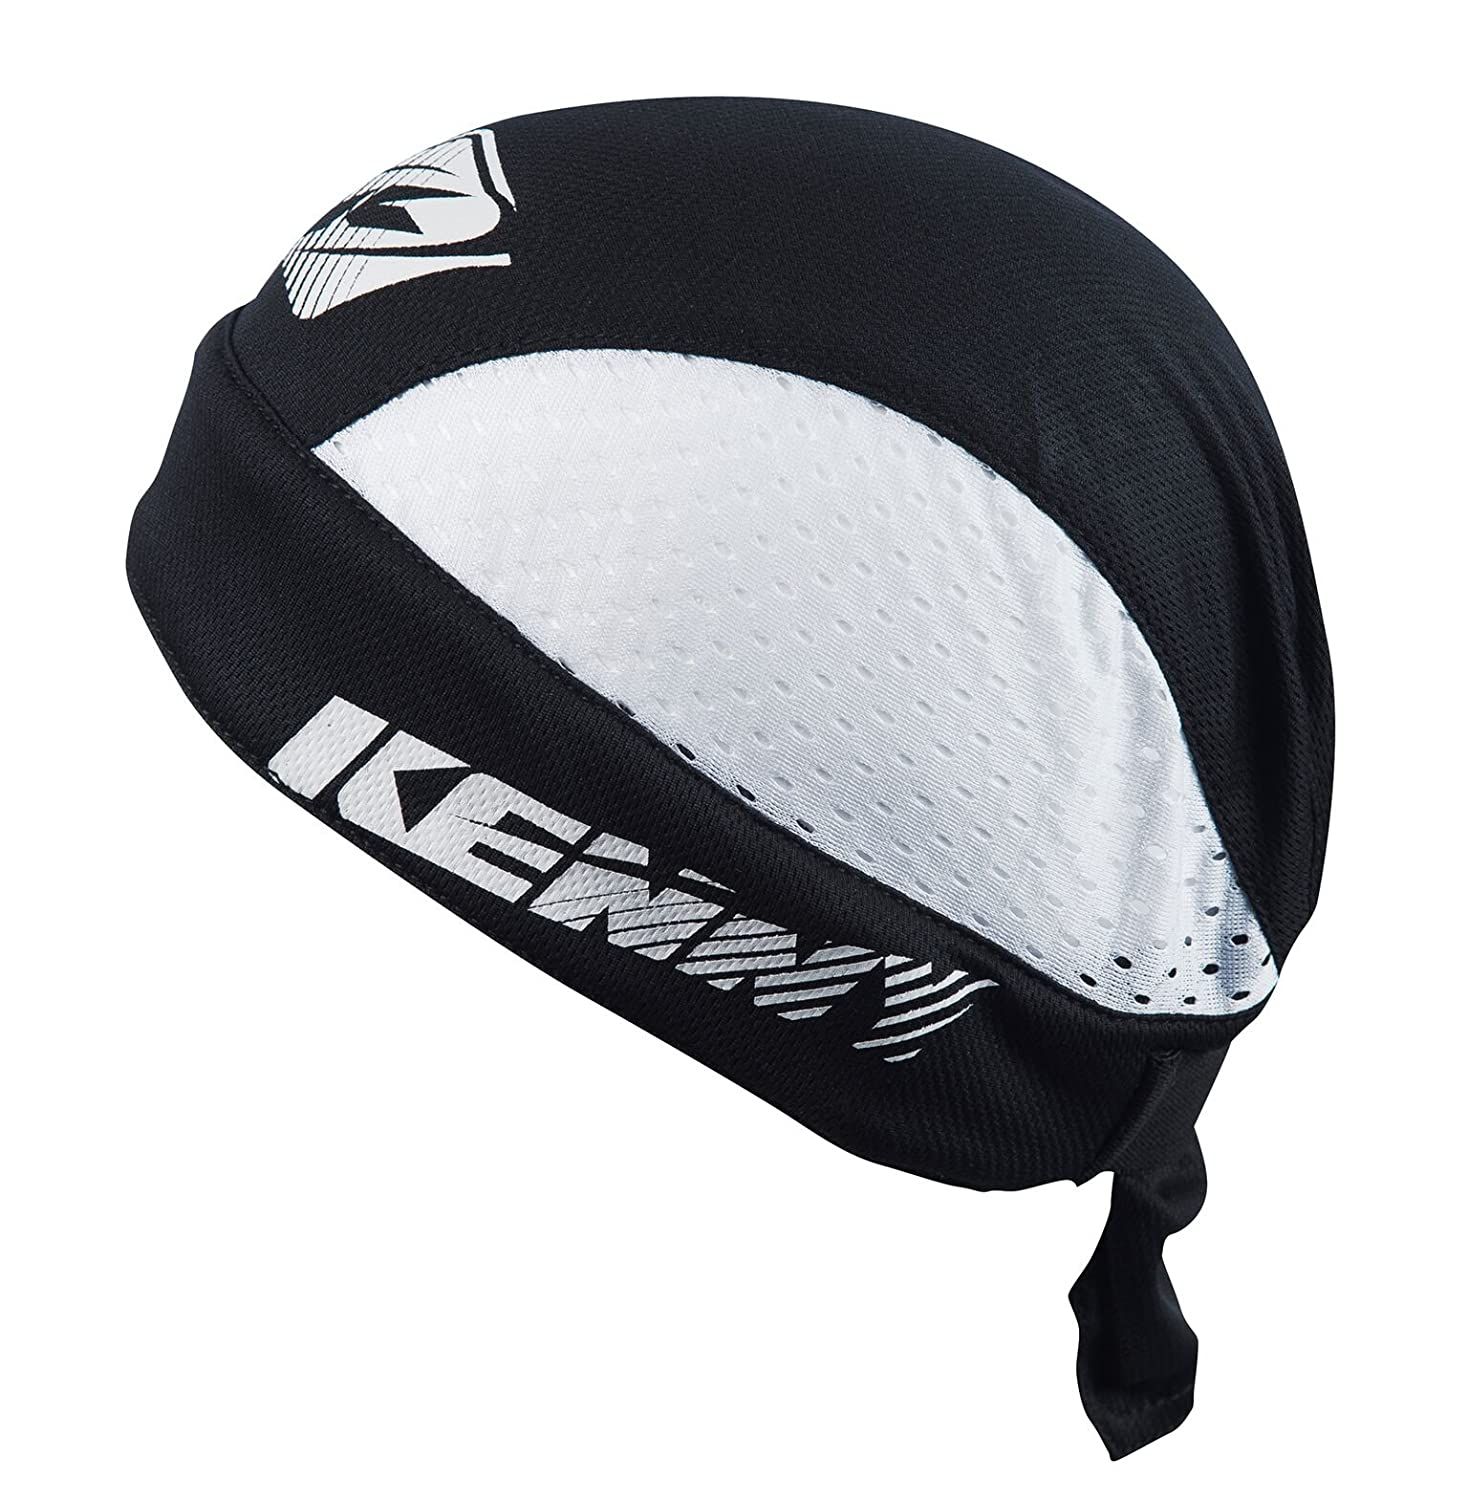 KENNY 151-0506011 sous Casque Mixte Adulte, Blanc YNVAD #Kenny